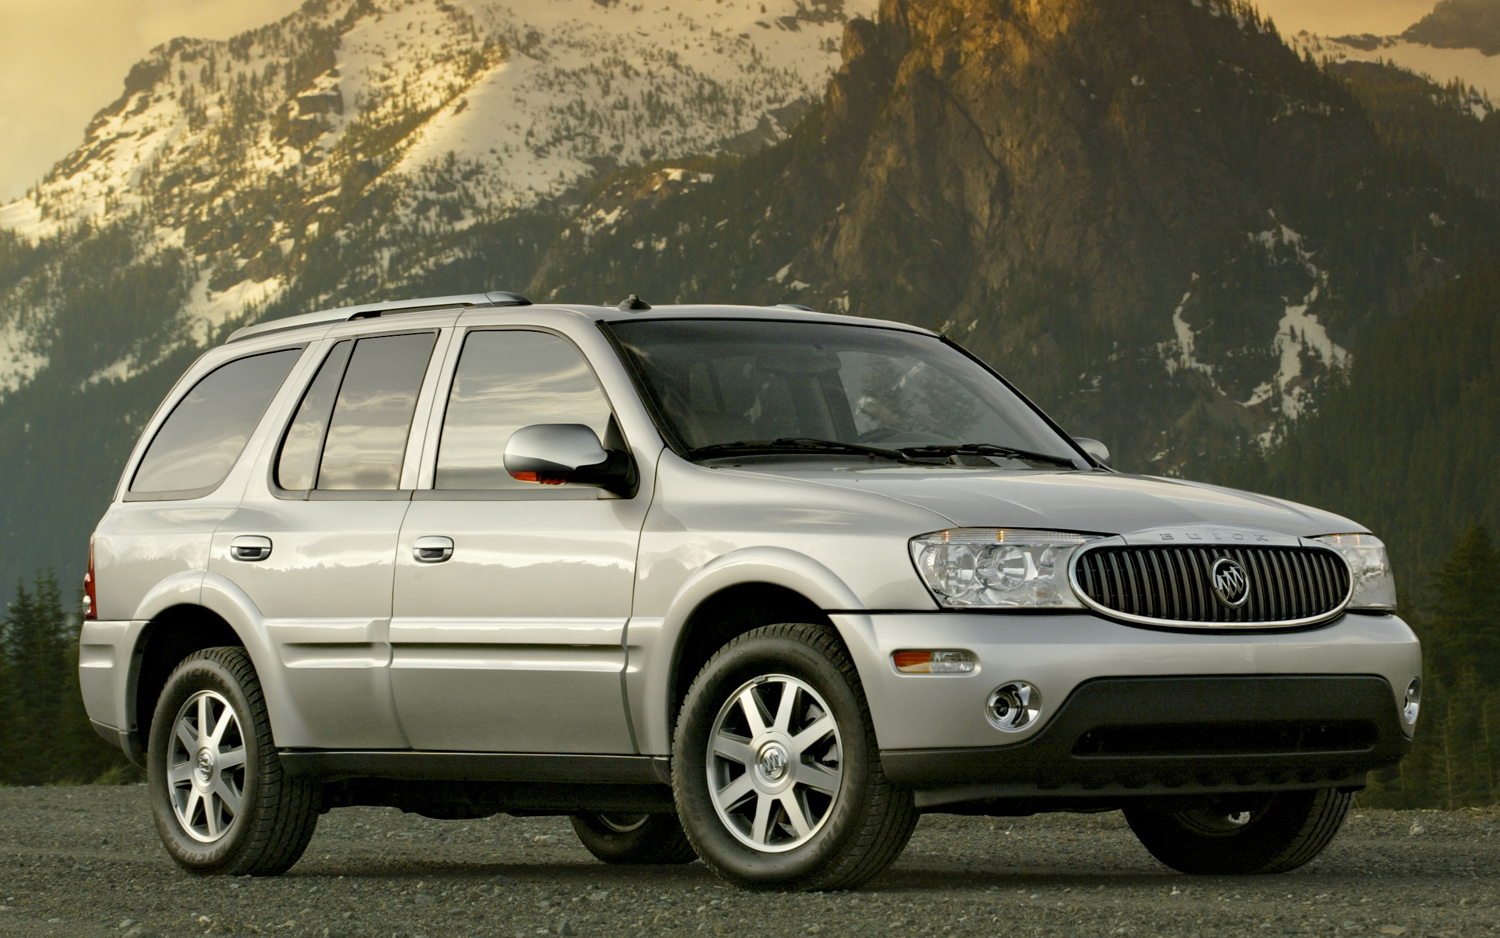 GM Will Pay to Repair Faulty Fuel Gauges on 2005-2007 SUVs